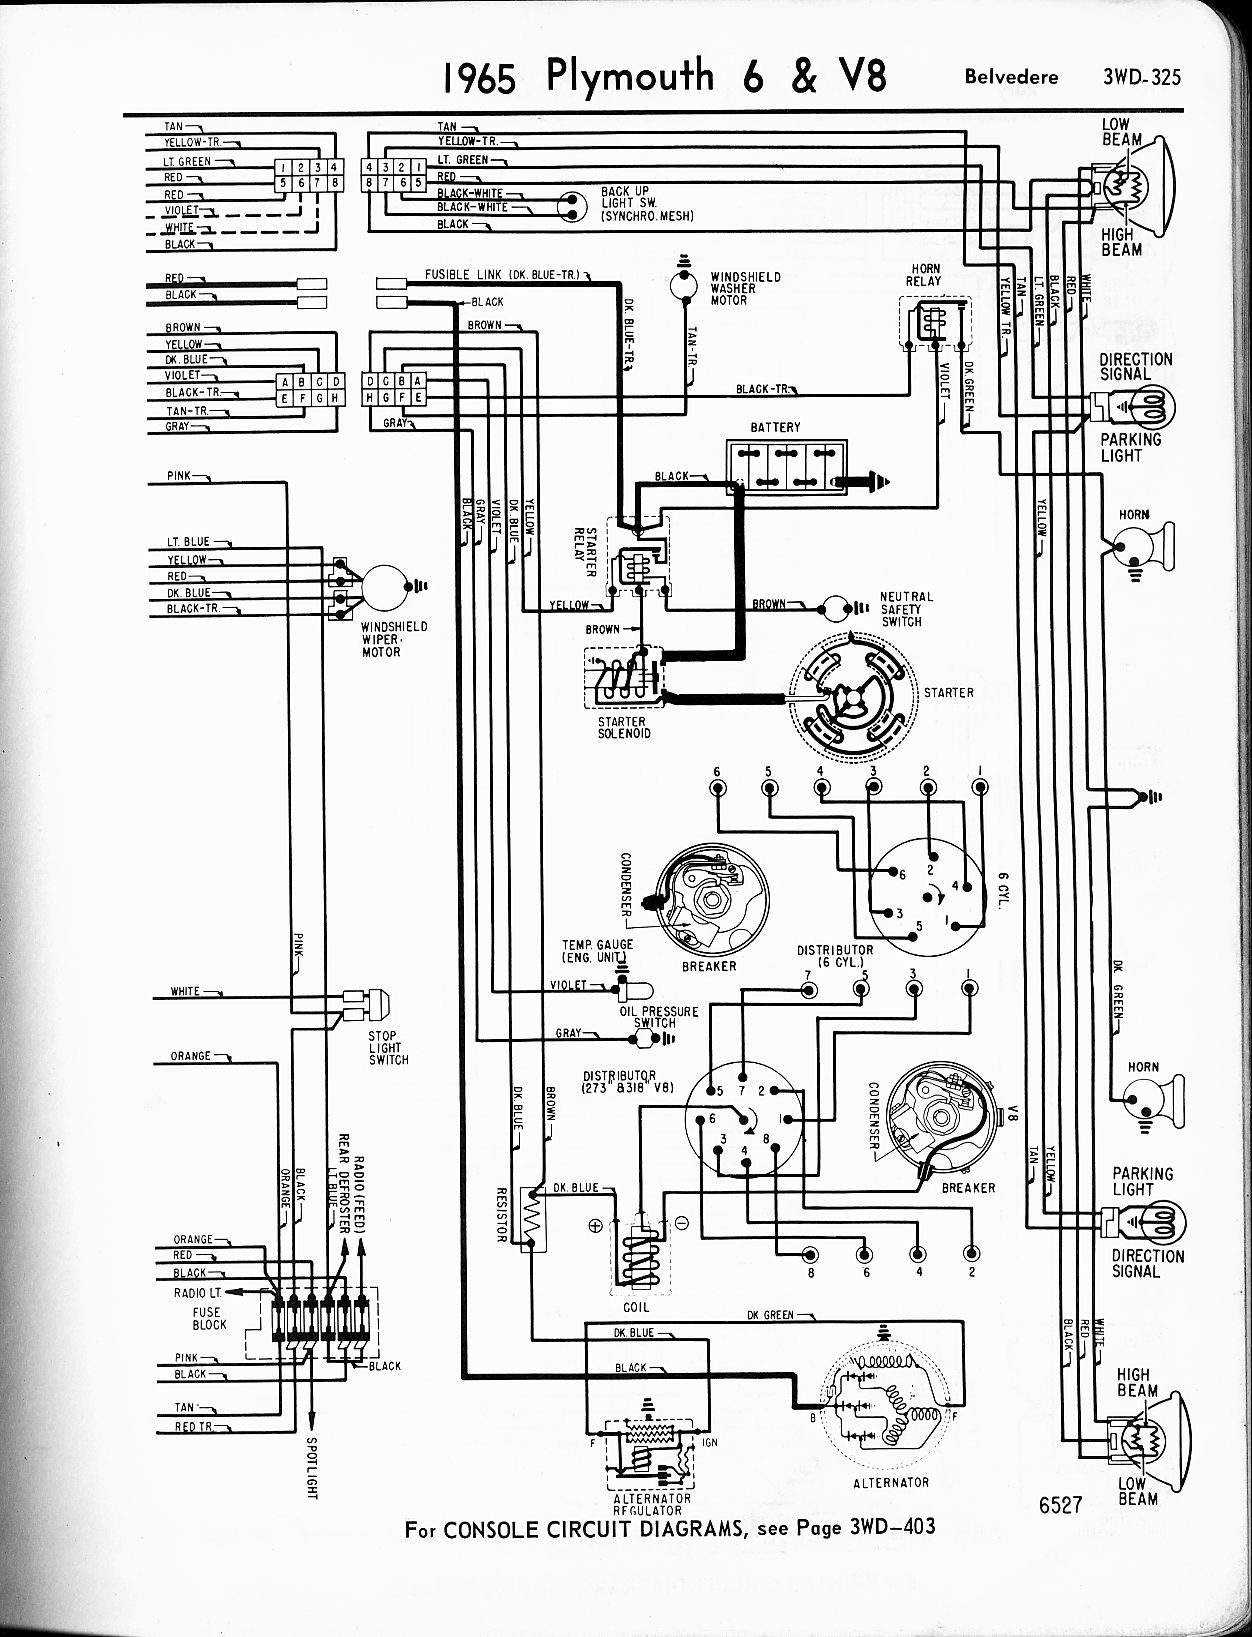 1966 Chrysler Alternator Wiring Diagram Trusted Diagrams 1956 Circuit Symbols U2022 Battery To